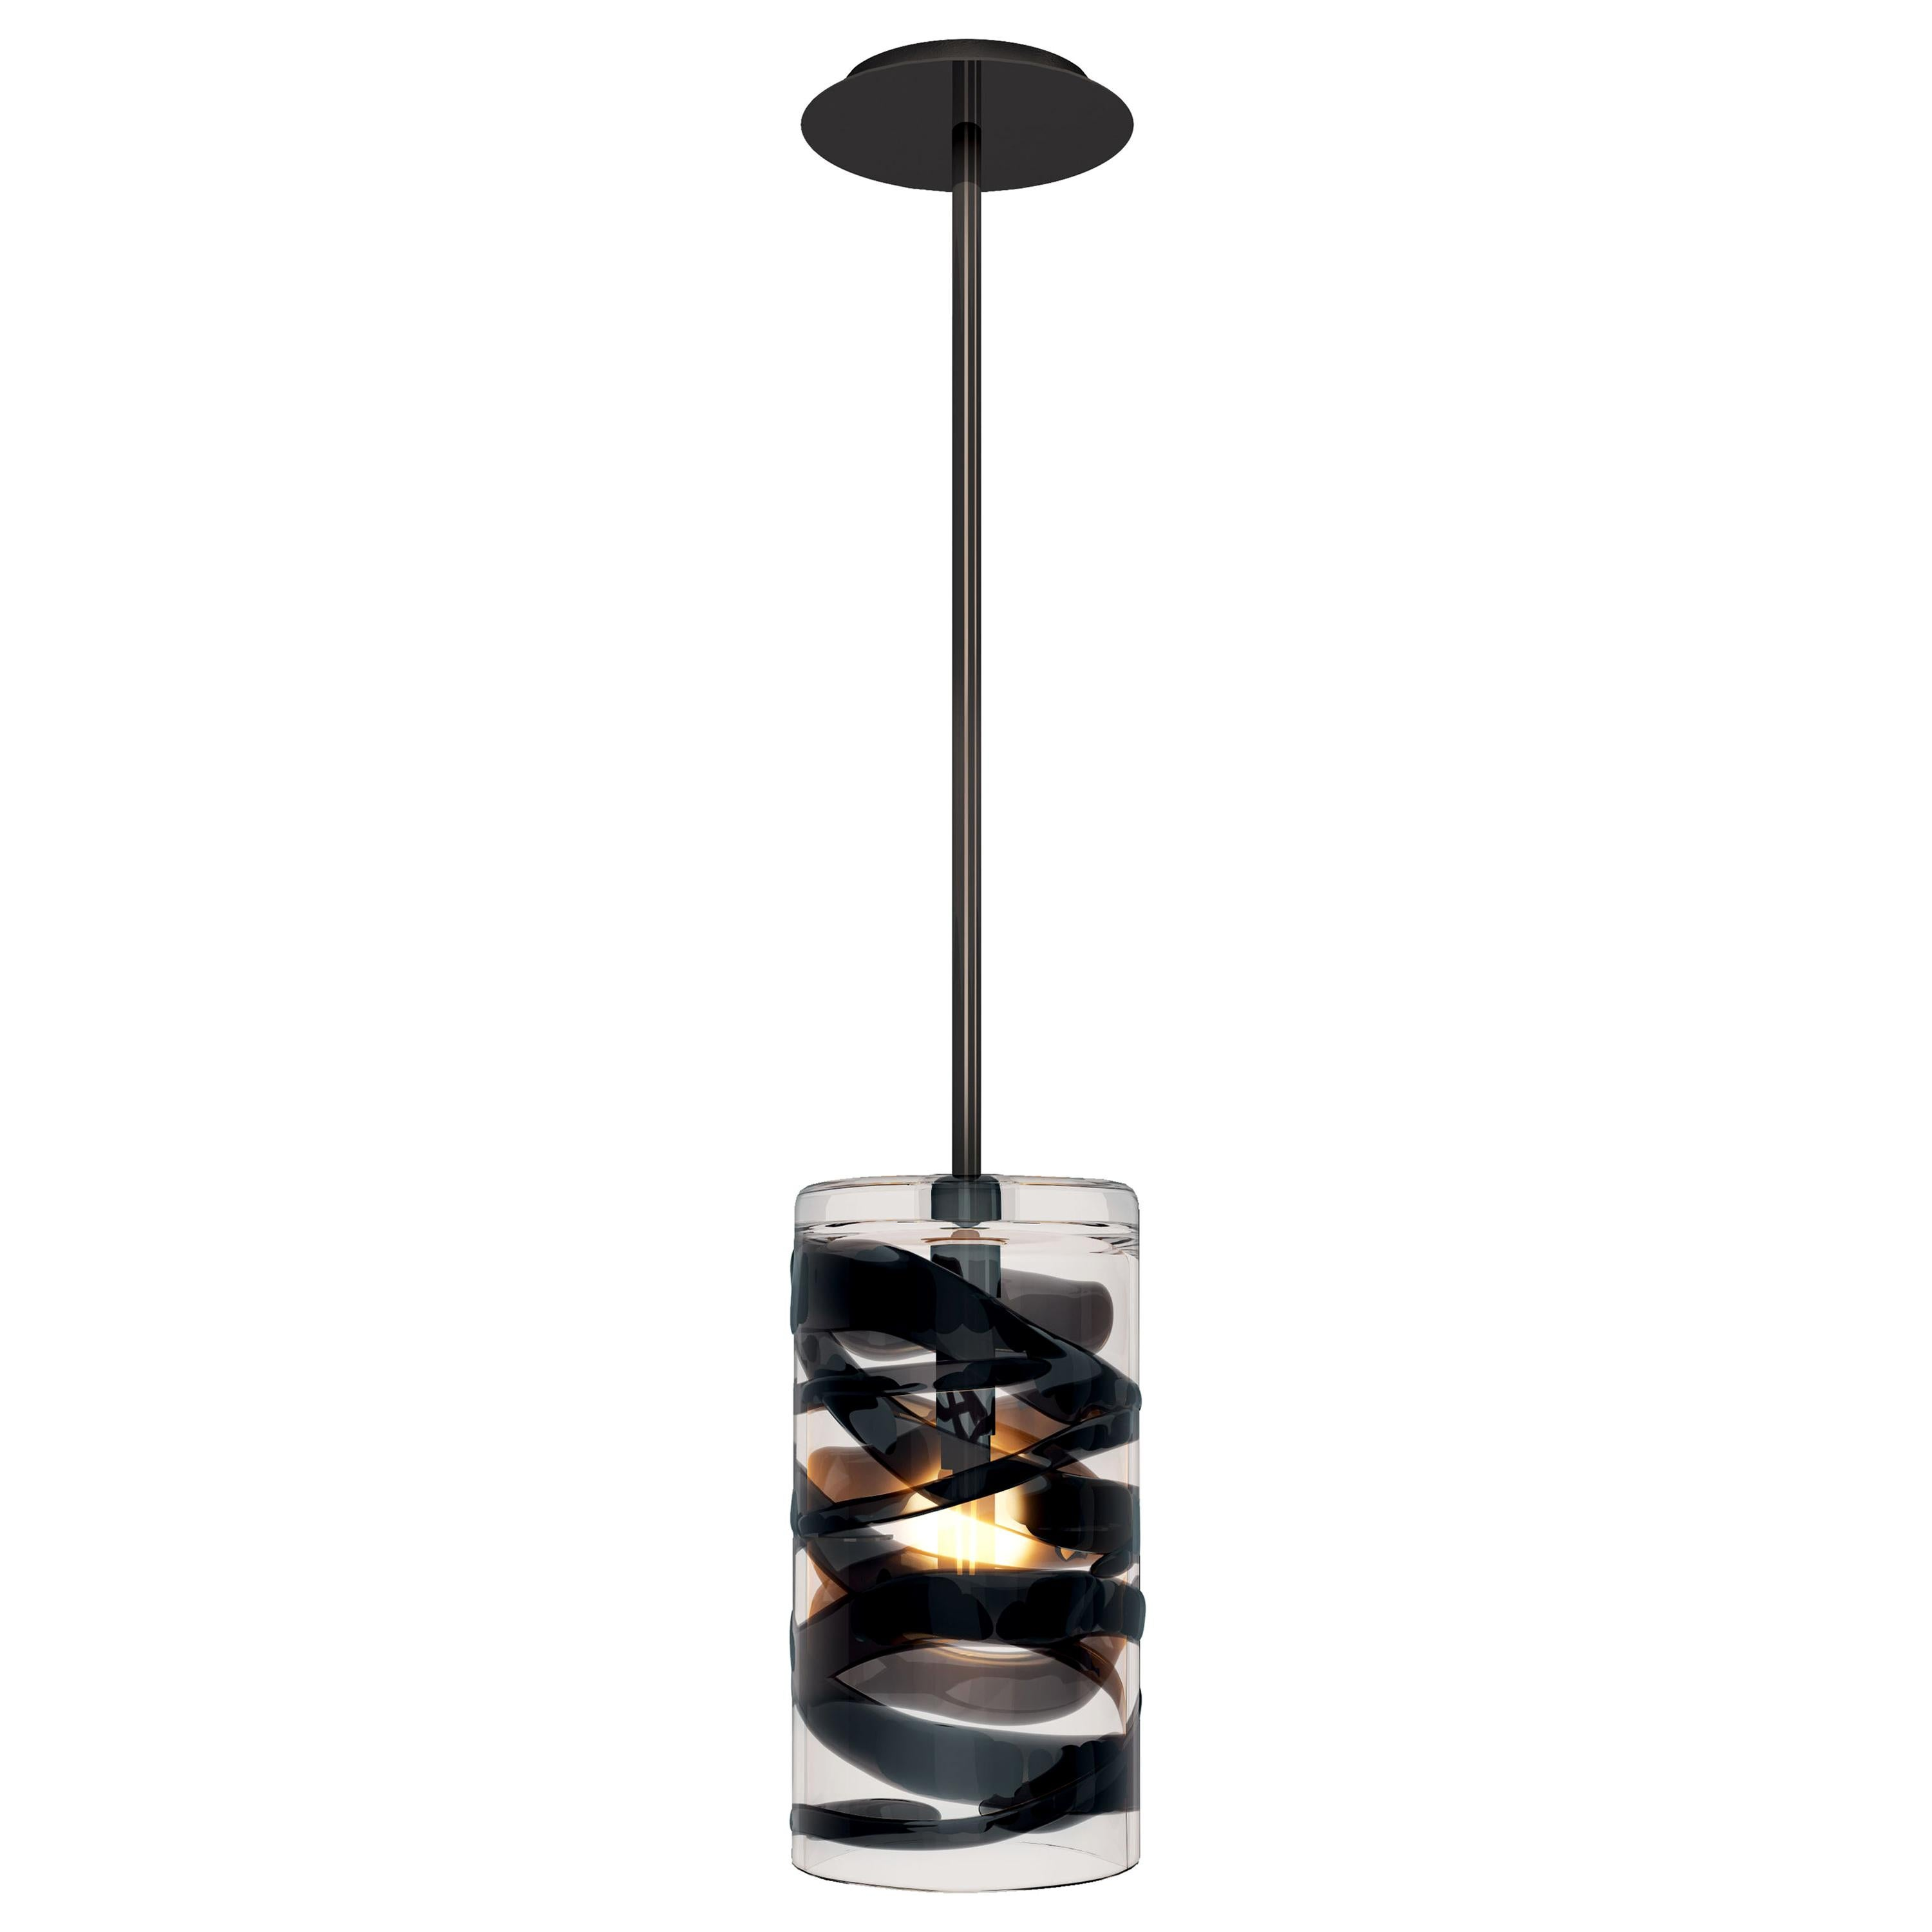 Peter Marino Cilindro Small Pendant in Crystal and Black Murano Glass